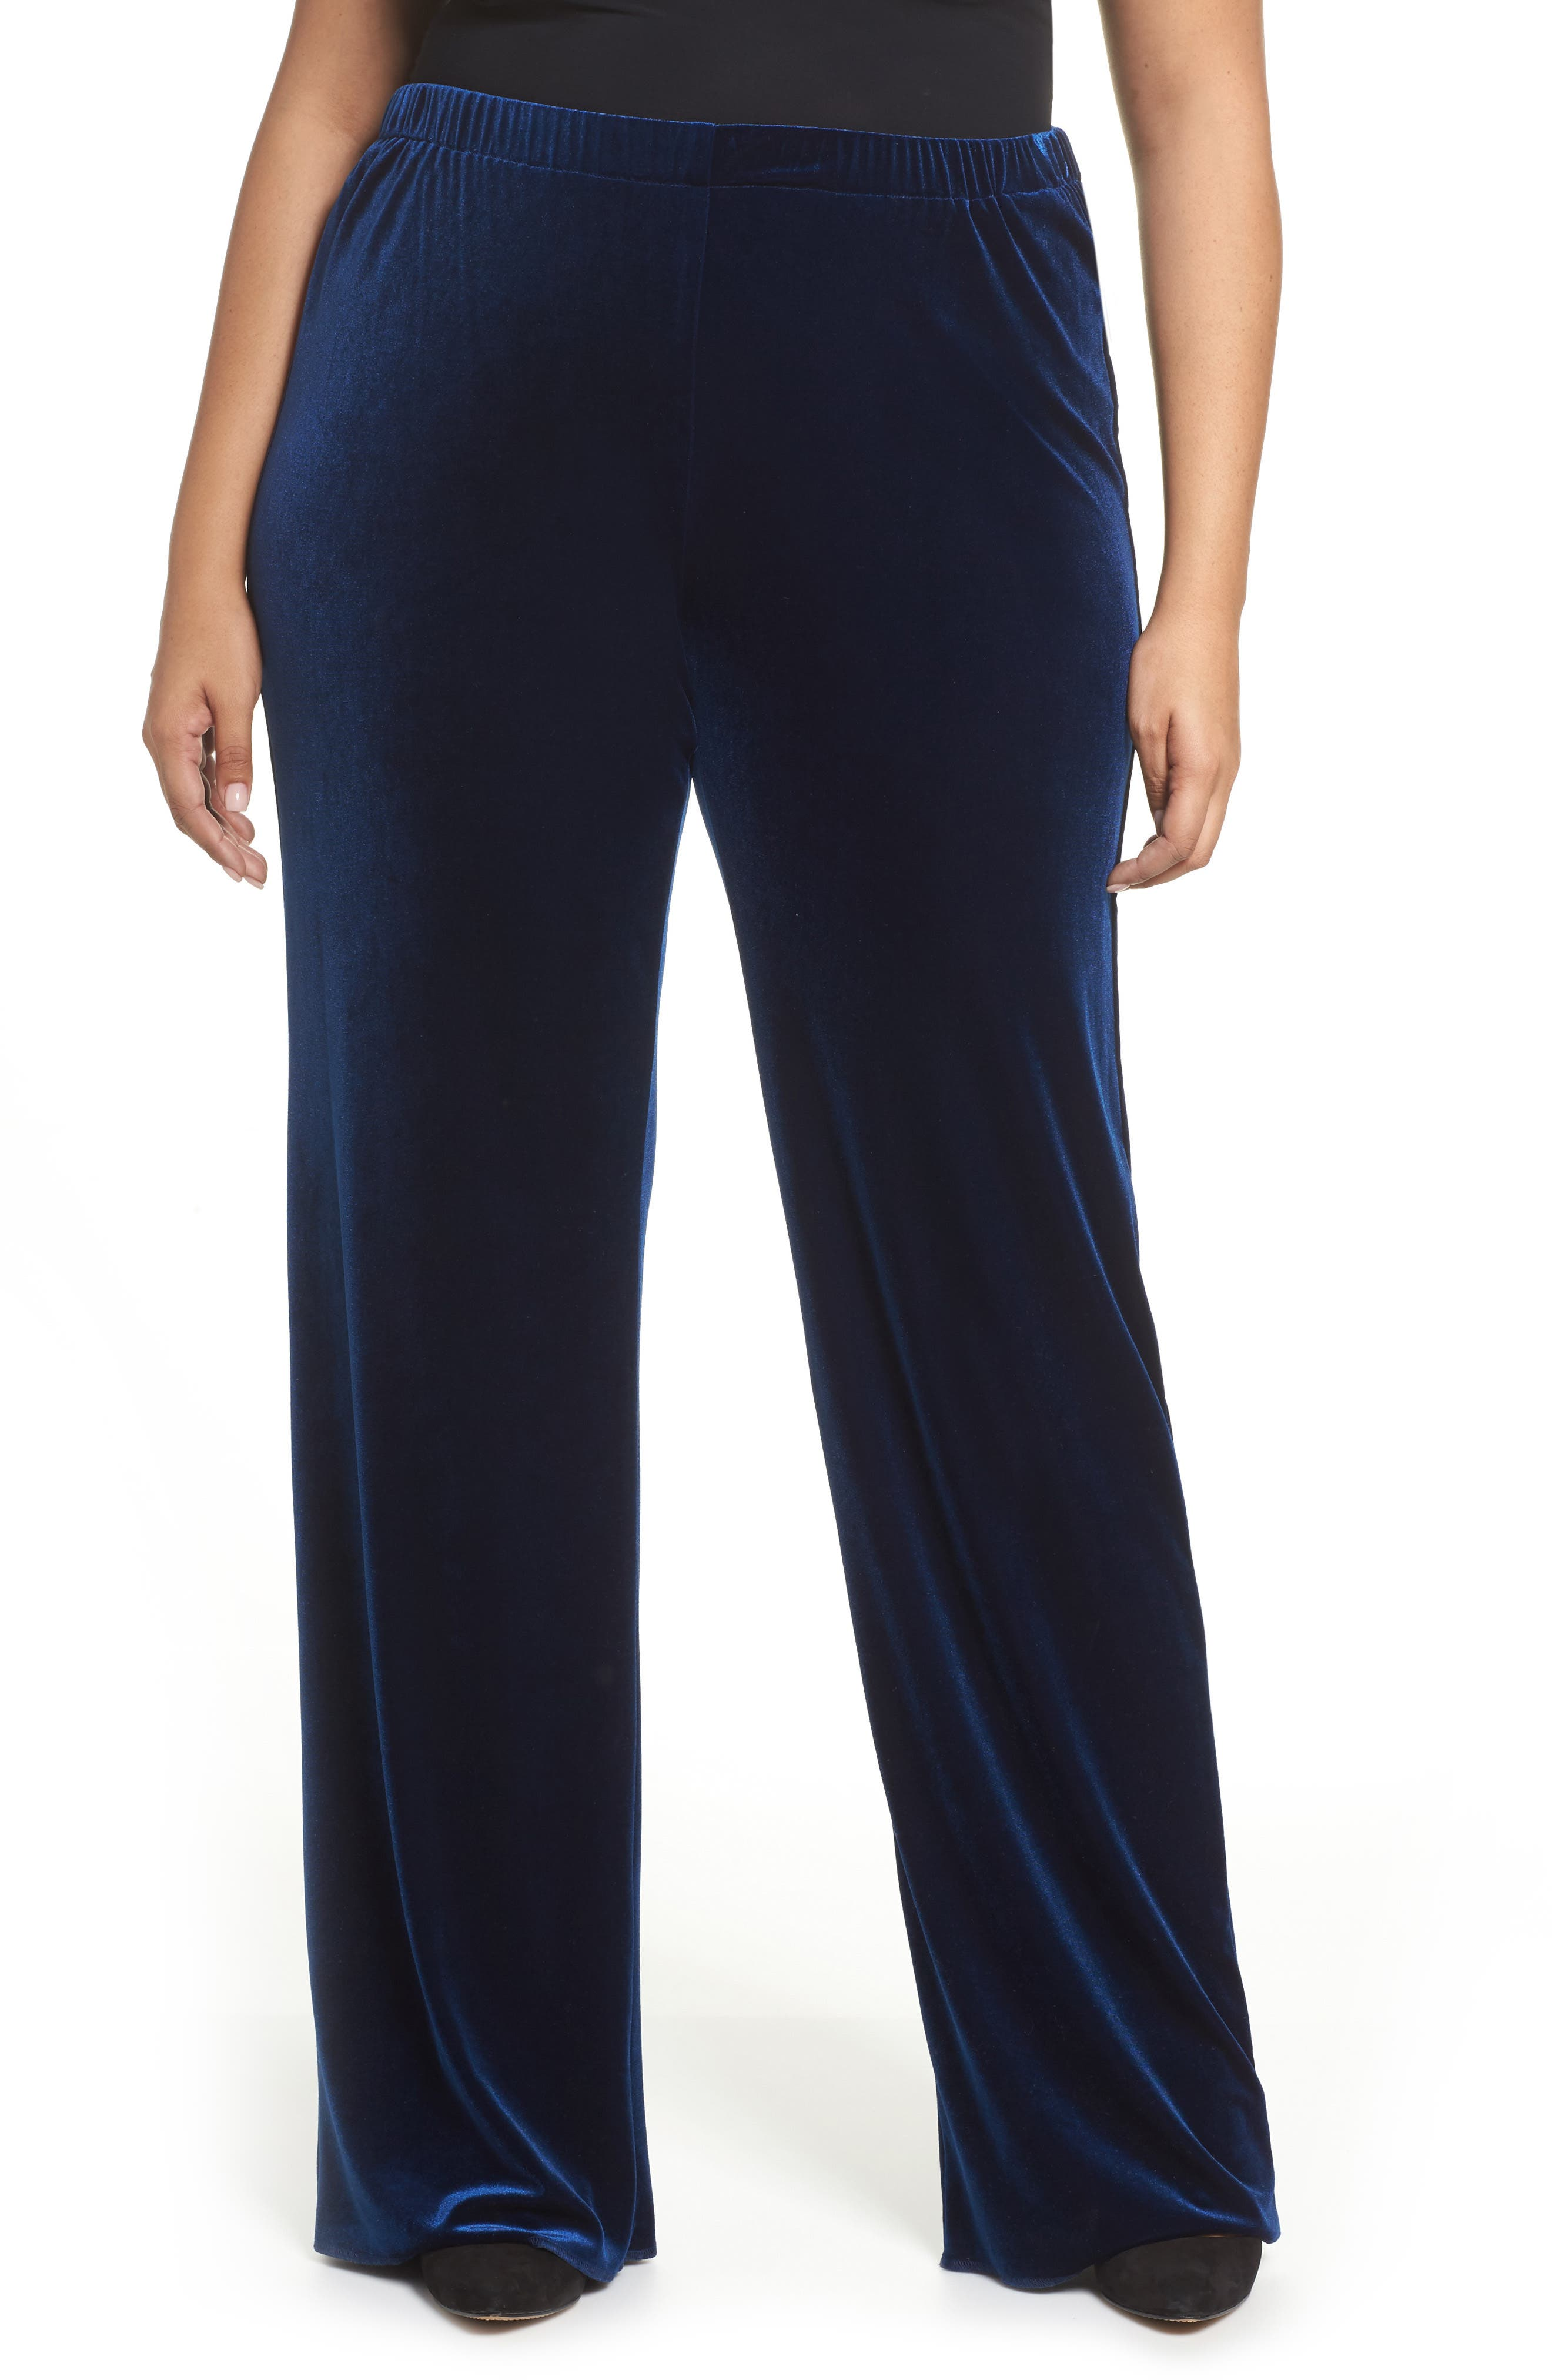 Rosita Velour Pants,                             Main thumbnail 1, color,                             411